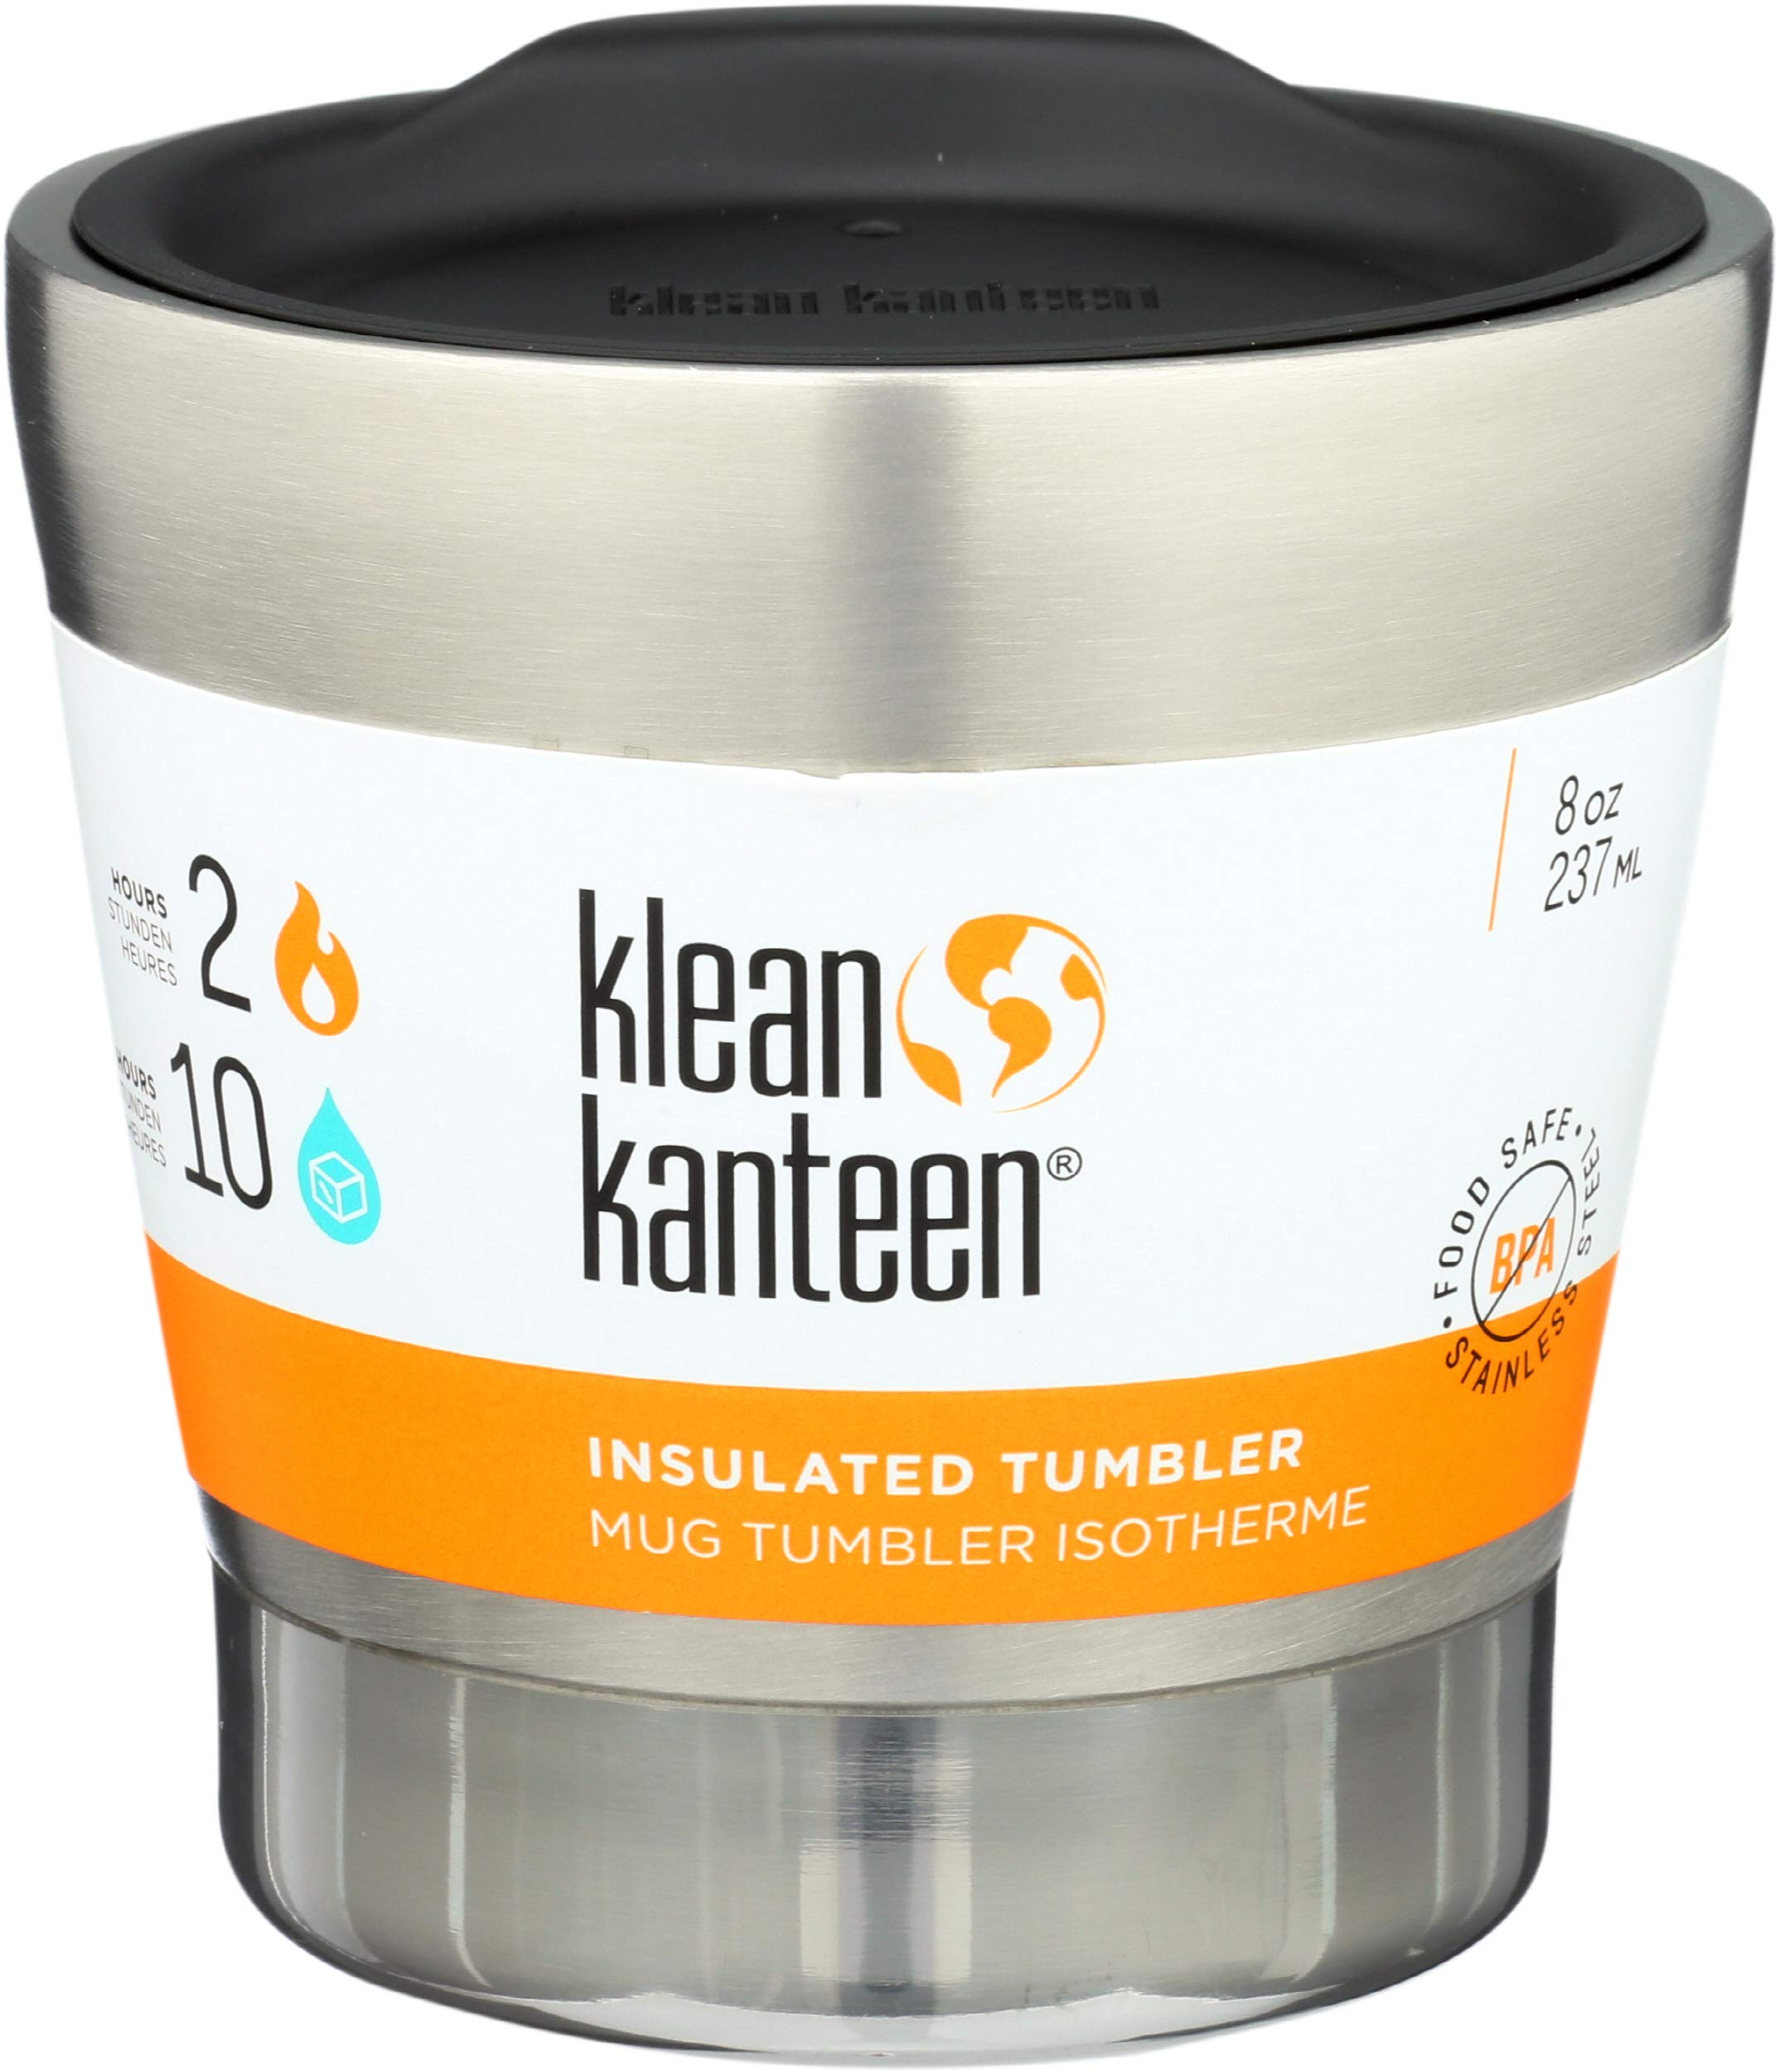 Klean Kanteen Unisex Vacuum Insulated Tumbler Cup, Silver, 237 ml